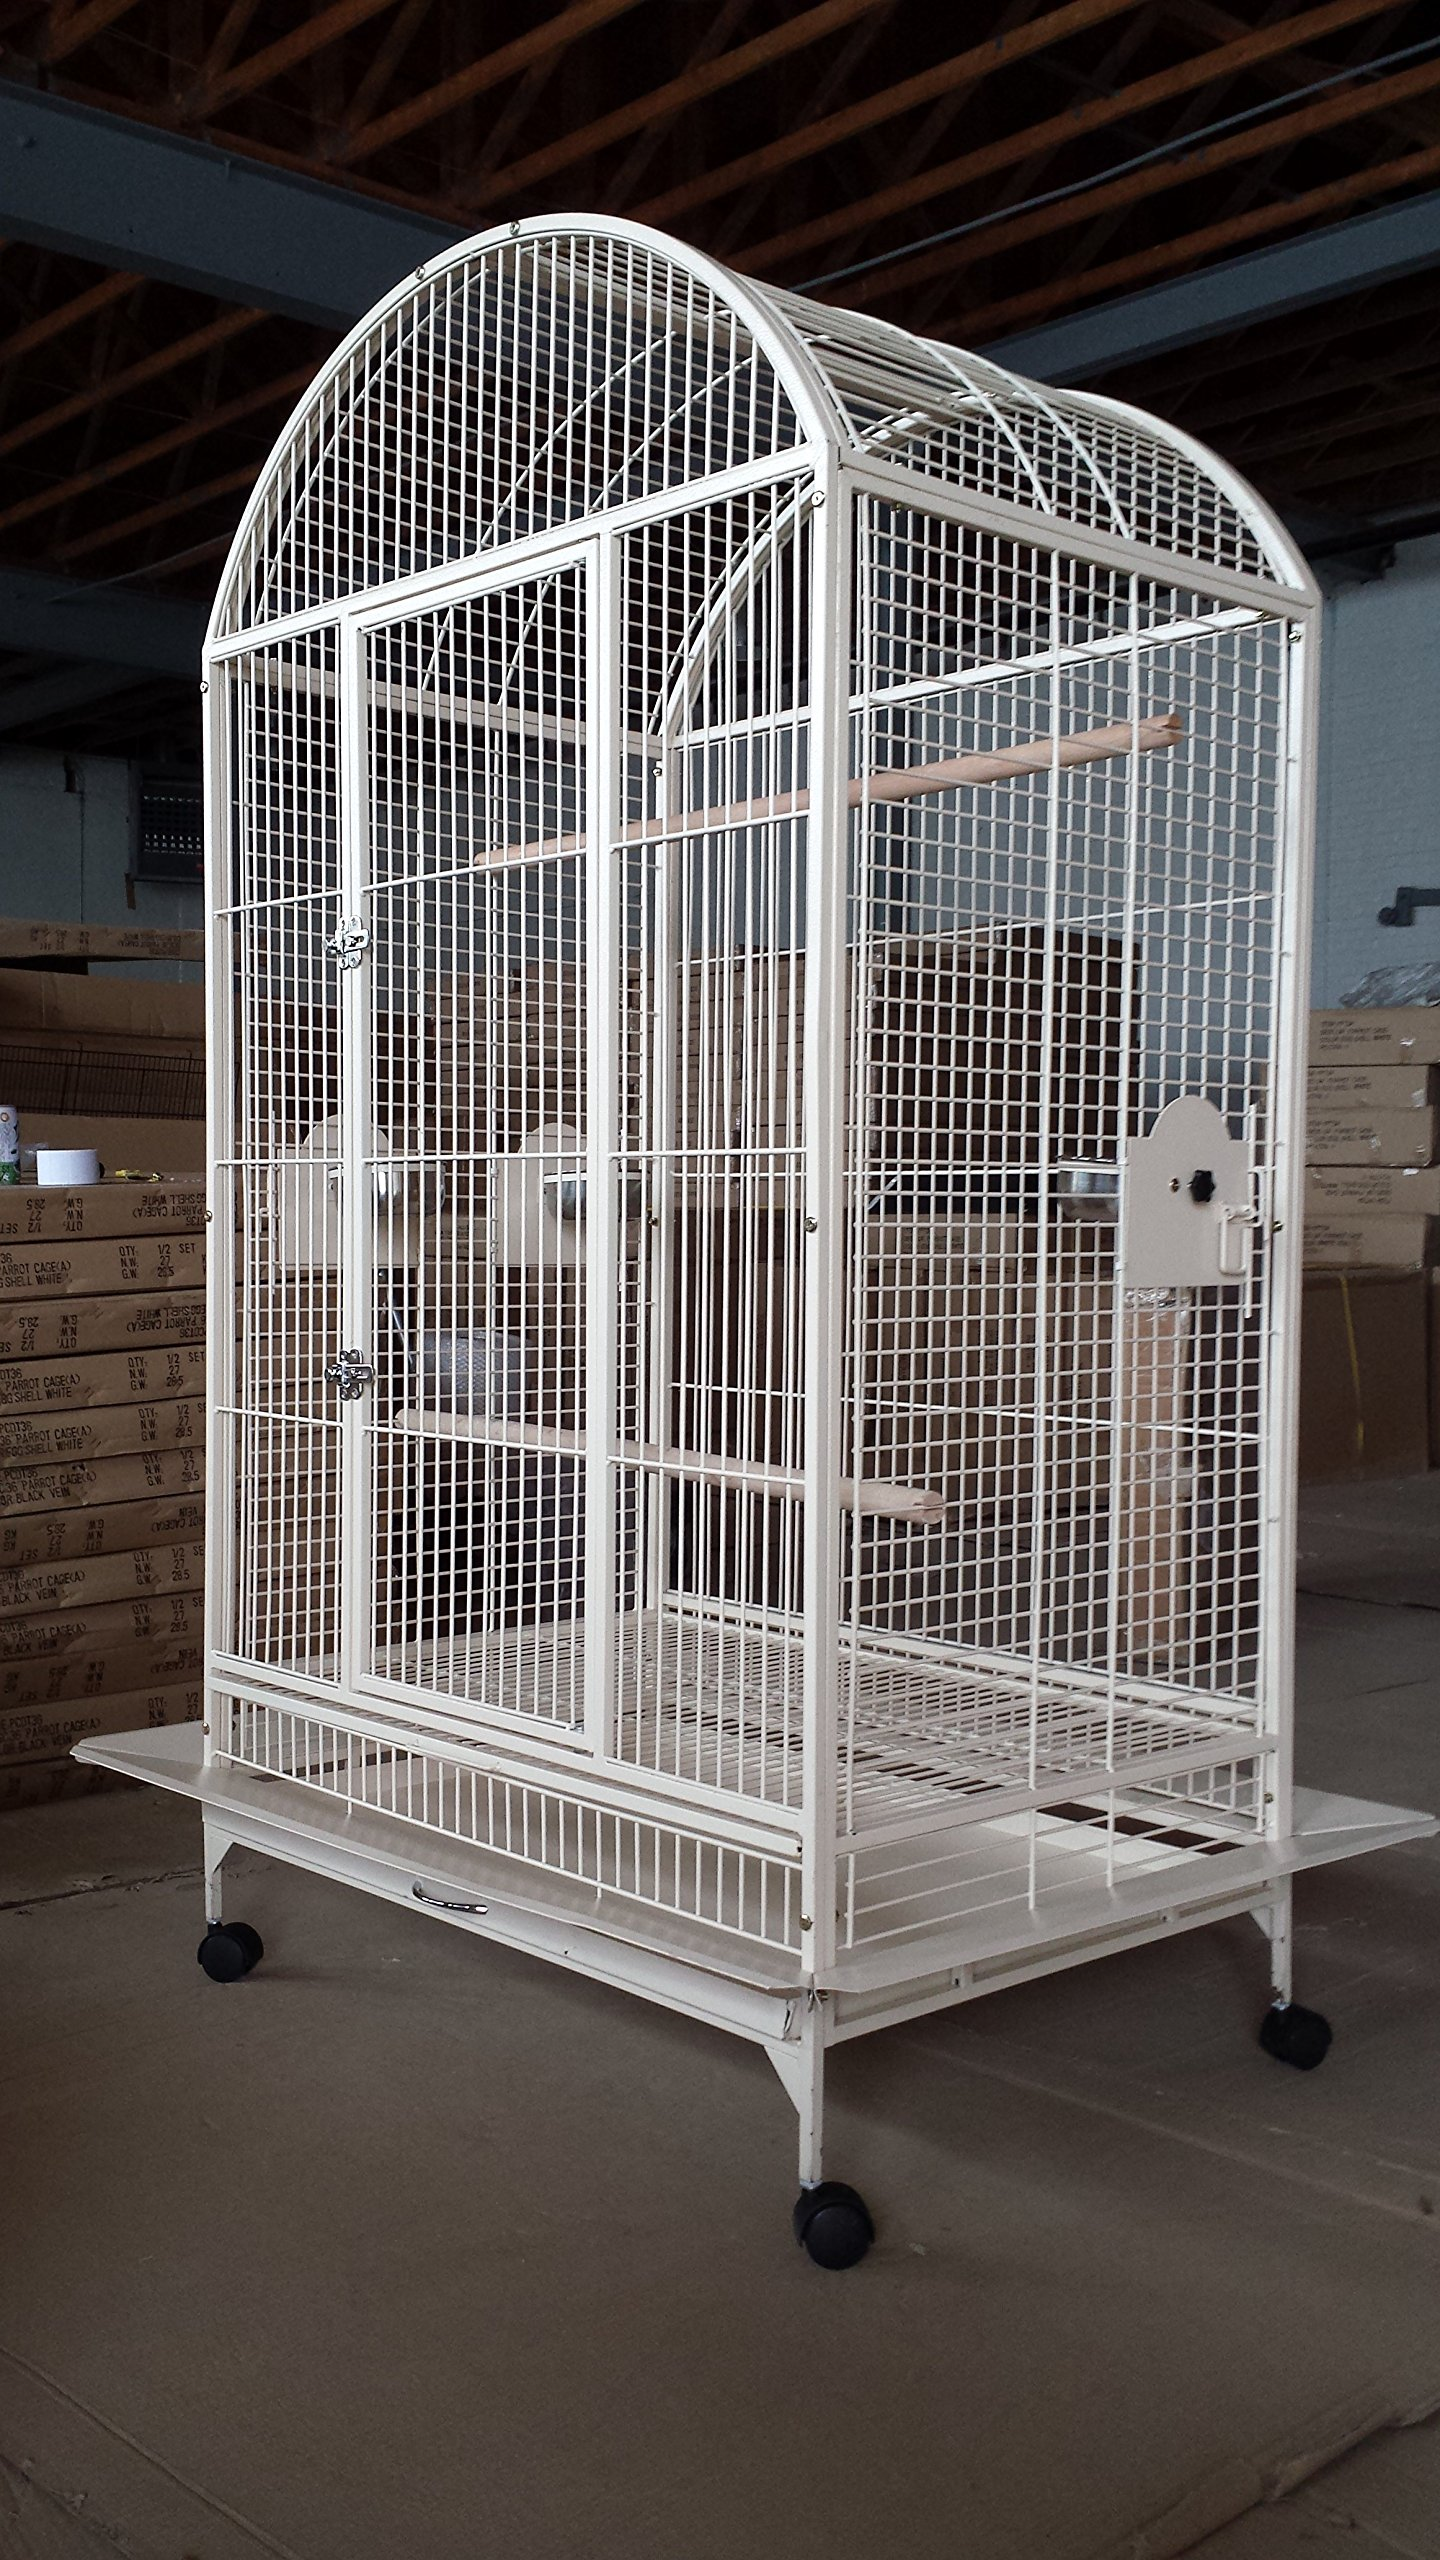 Everila PCDT36 Large Bird Cage Parrot Cages Dometop 36''x26''x65'' Macaw African Grey Cockatoo (Egg Shell White) by Everila